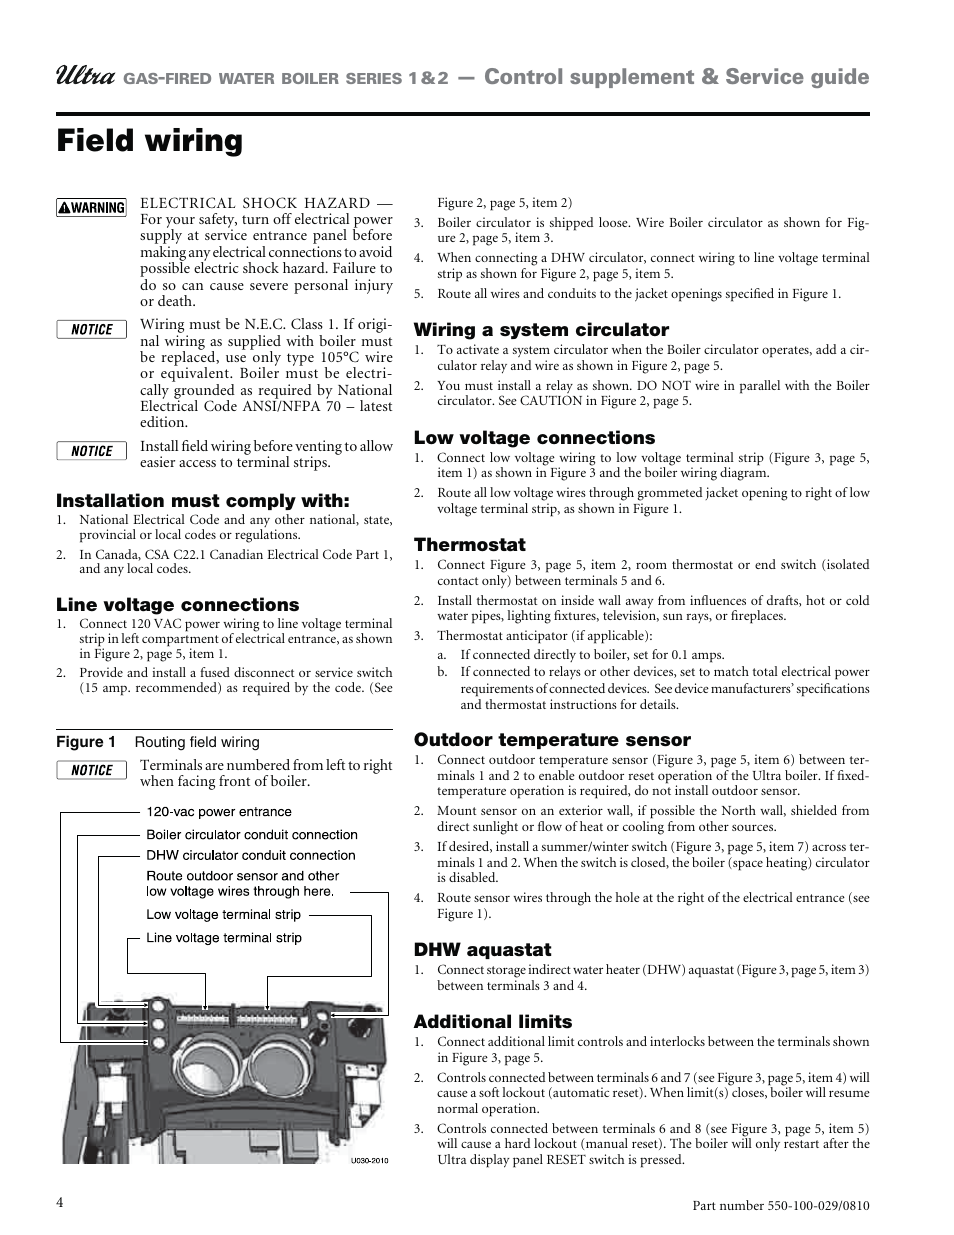 Canadian Electrical Code Low Voltage Wiring Trusted Diagrams Guide Field Control Supplement Service Weil Mclain Ultra Household Diagram